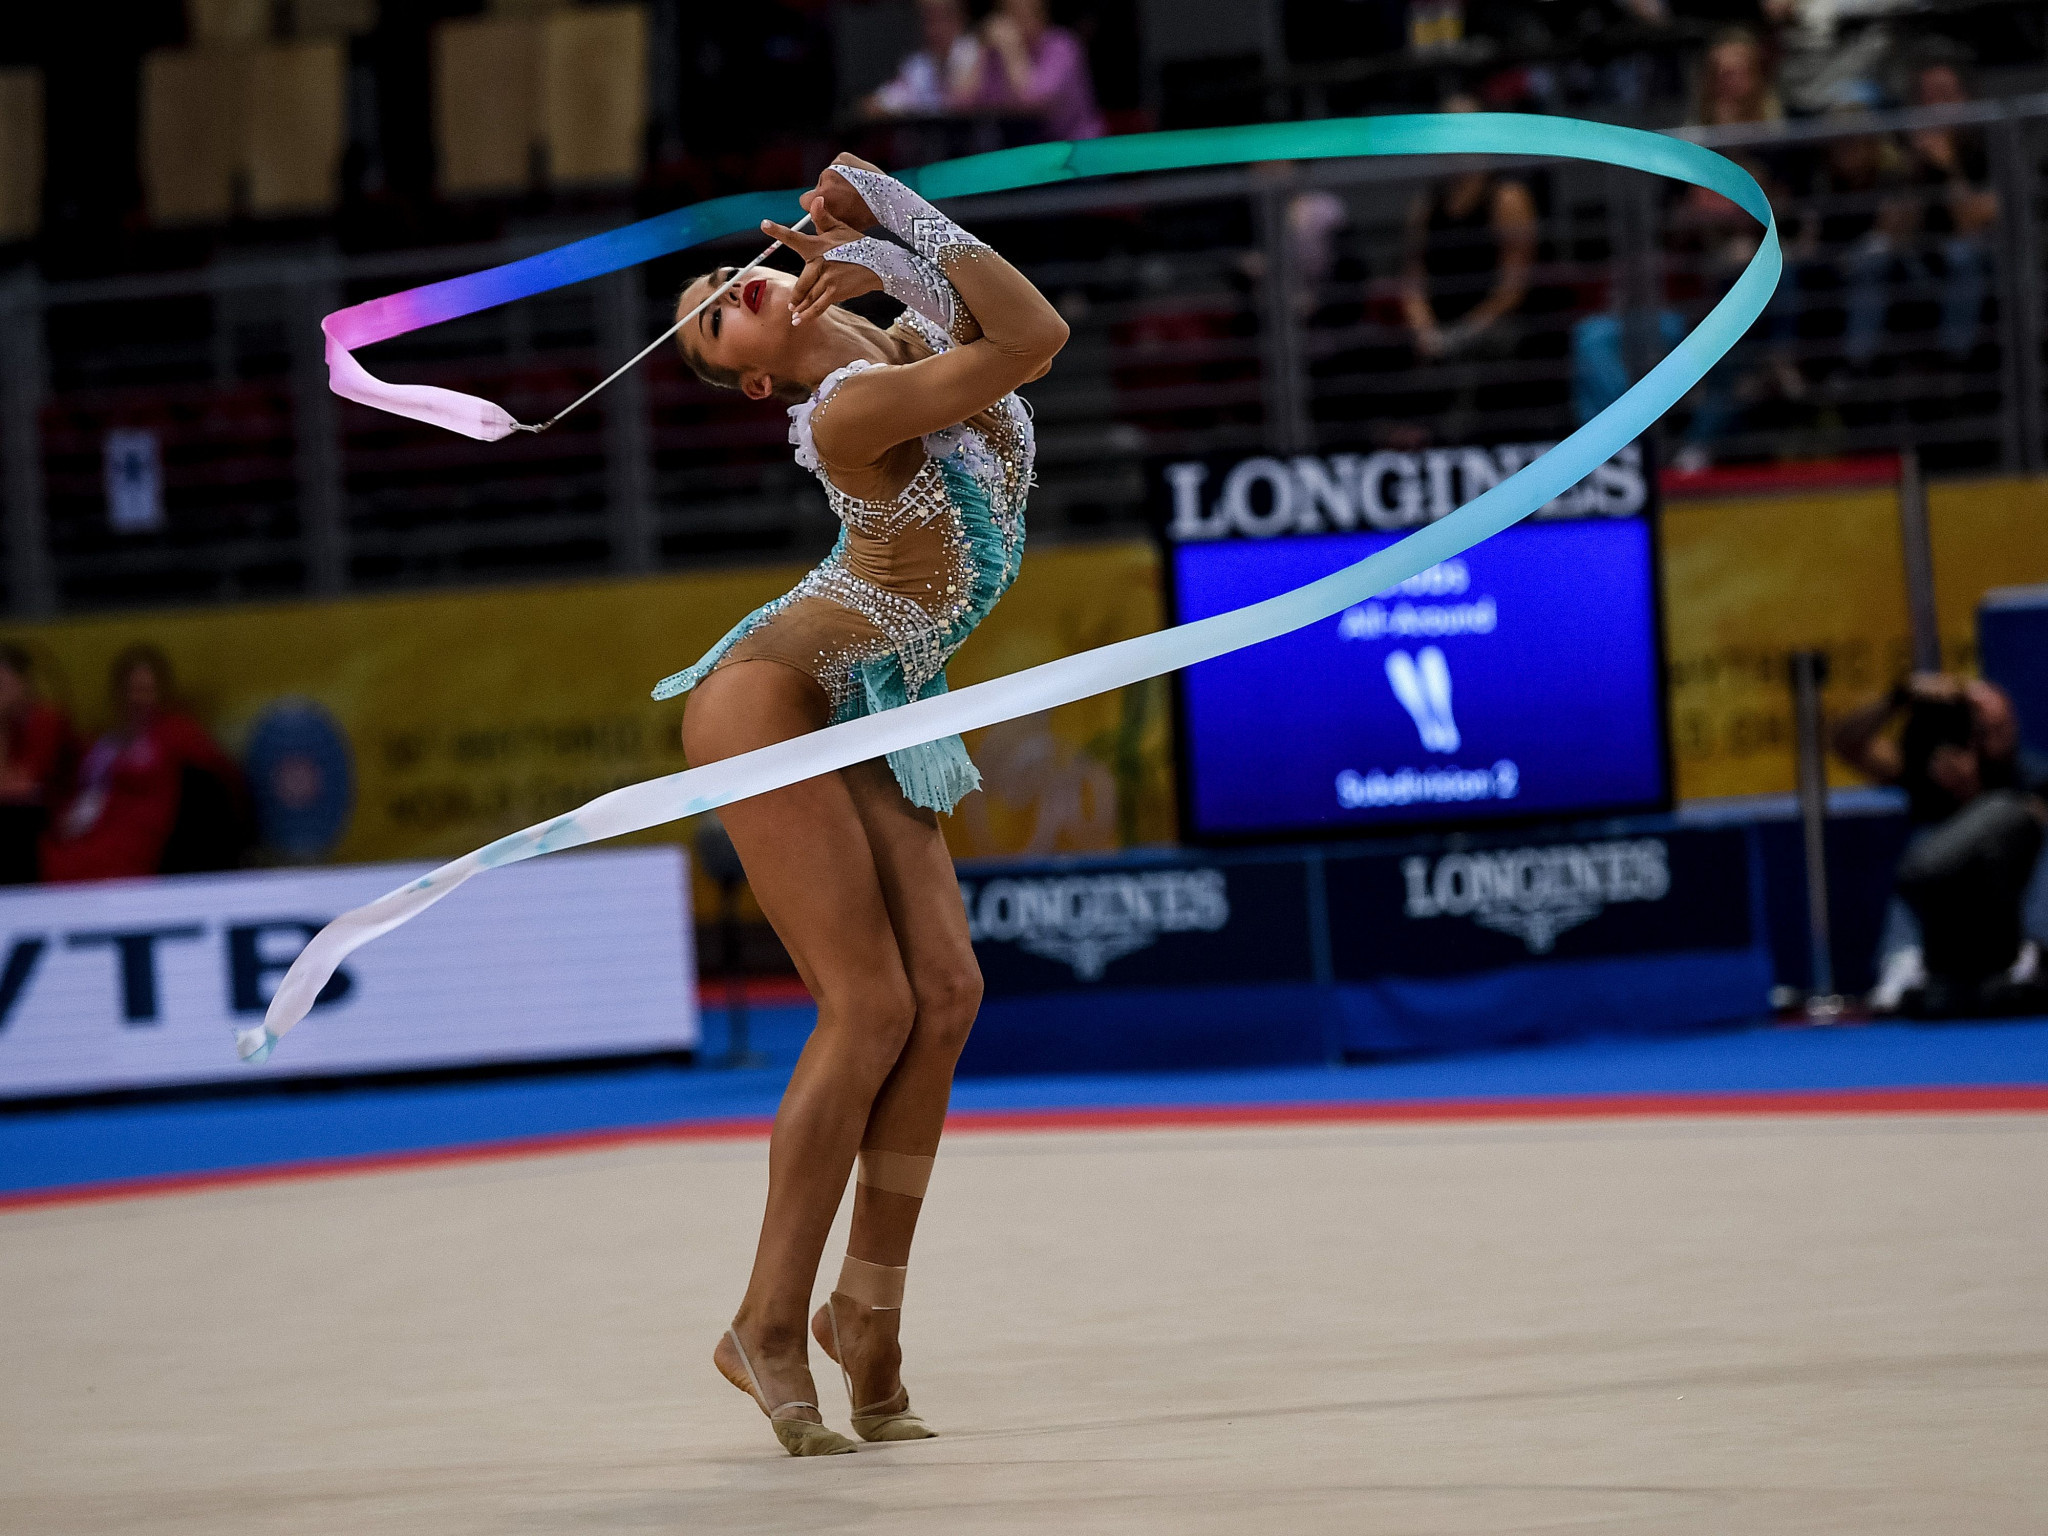 Home hope Vladinova drops away as Russia's Soldatova flourishes at Rhythmic Gymnastics World Cup in Sofia